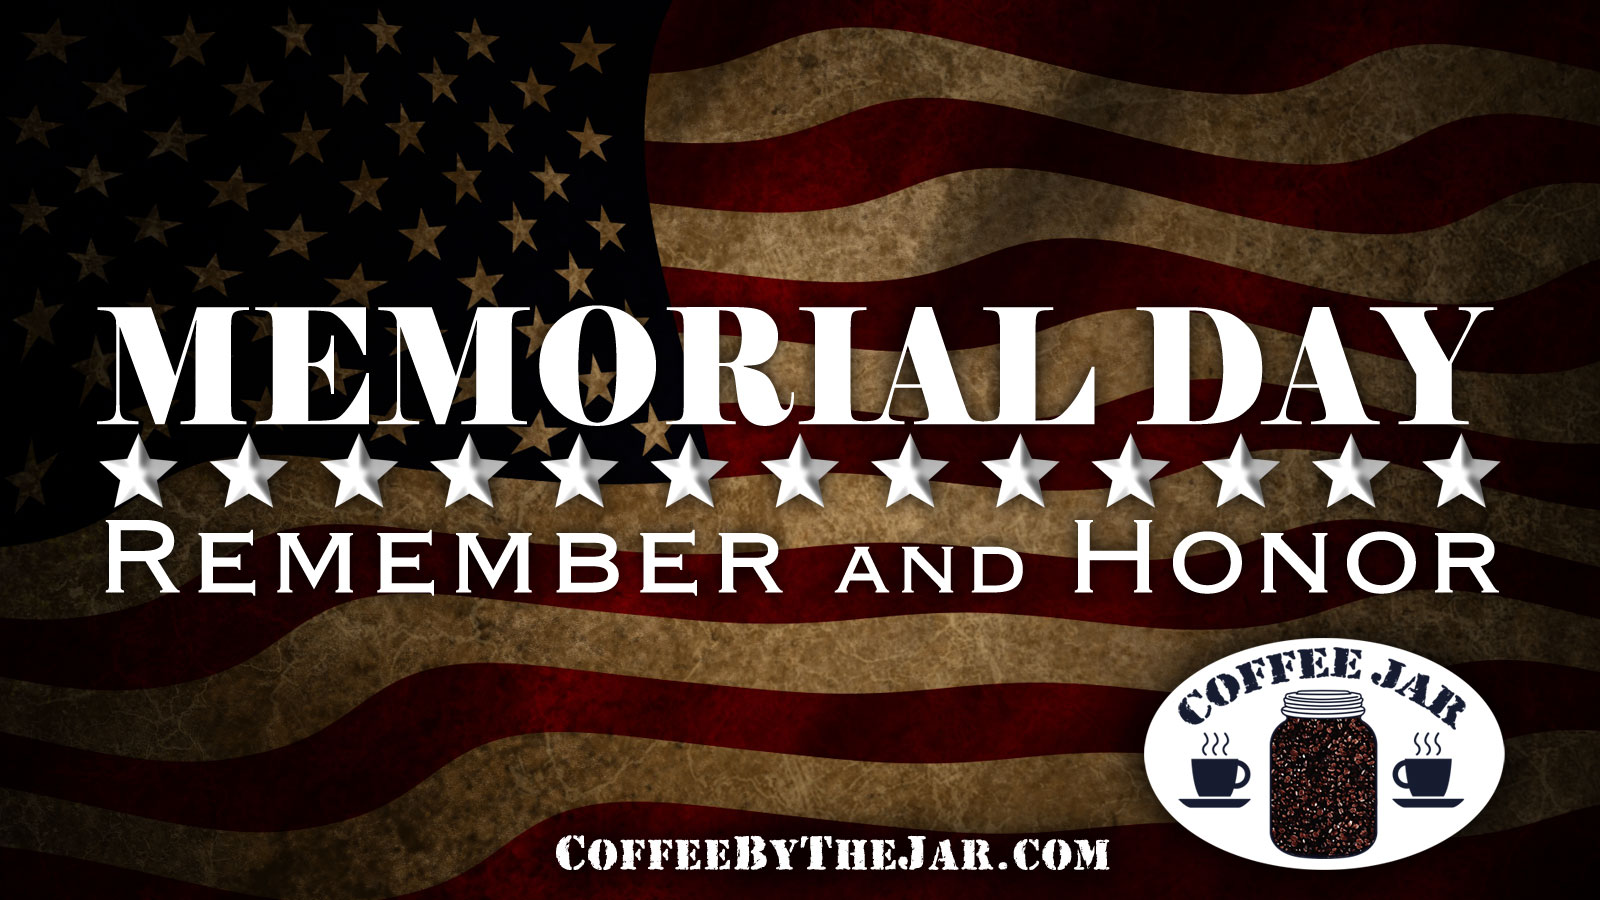 Coffee-Jar-Memorial-Day-wallpaper02-1600x900